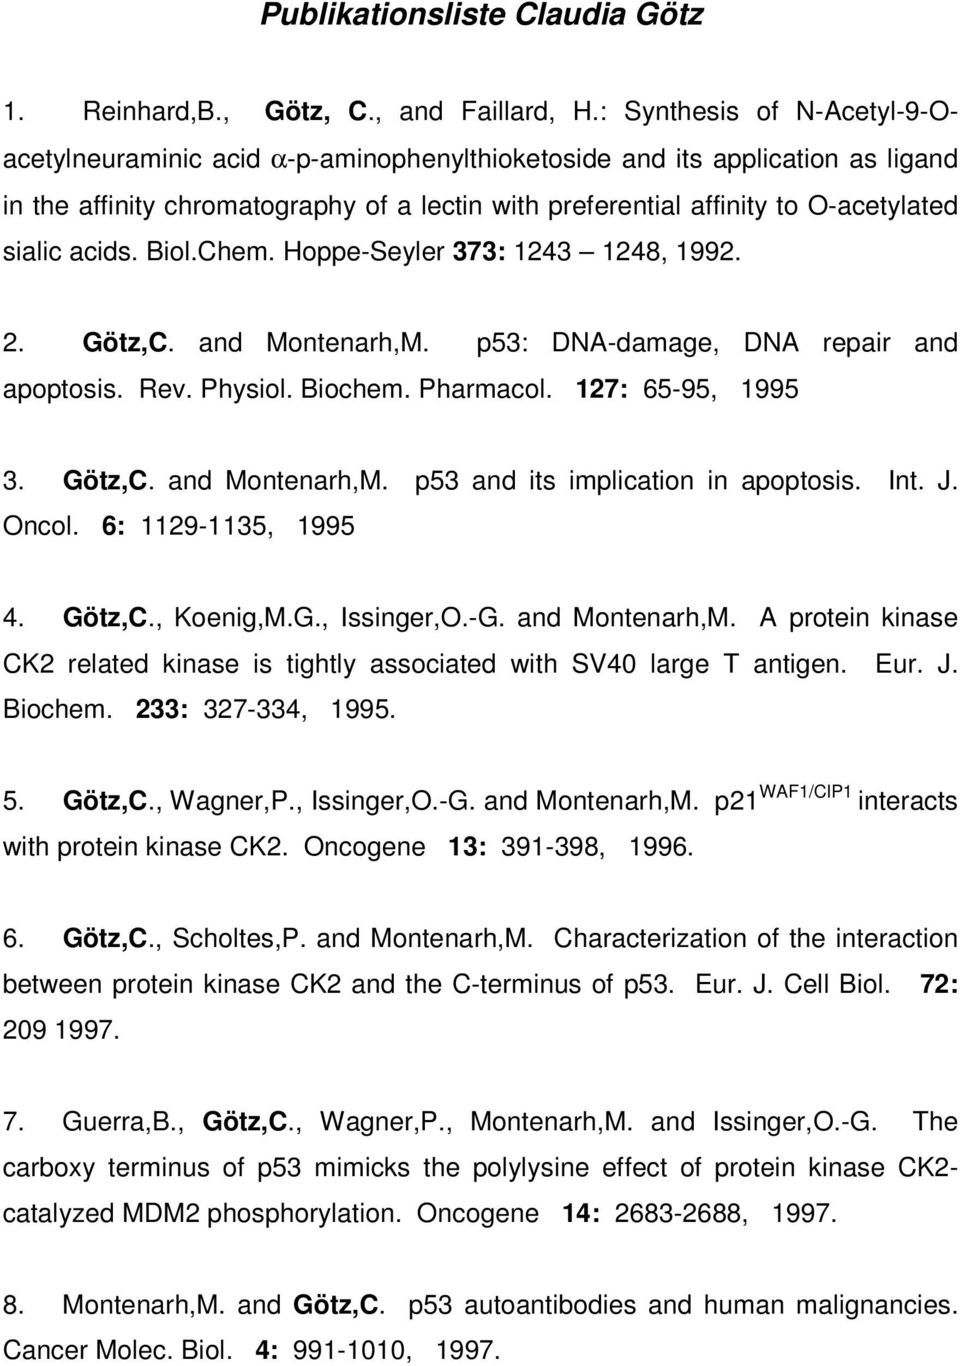 acids. Biol.Chem. Hoppe-Seyler 373: 1243 1248, 1992. 2. Götz,C. and Montenarh,M. p53: DNA-damage, DNA repair and apoptosis. Rev. Physiol. Biochem. Pharmacol. 127: 65-95, 1995 3. Götz,C. and Montenarh,M. p53 and its implication in apoptosis.